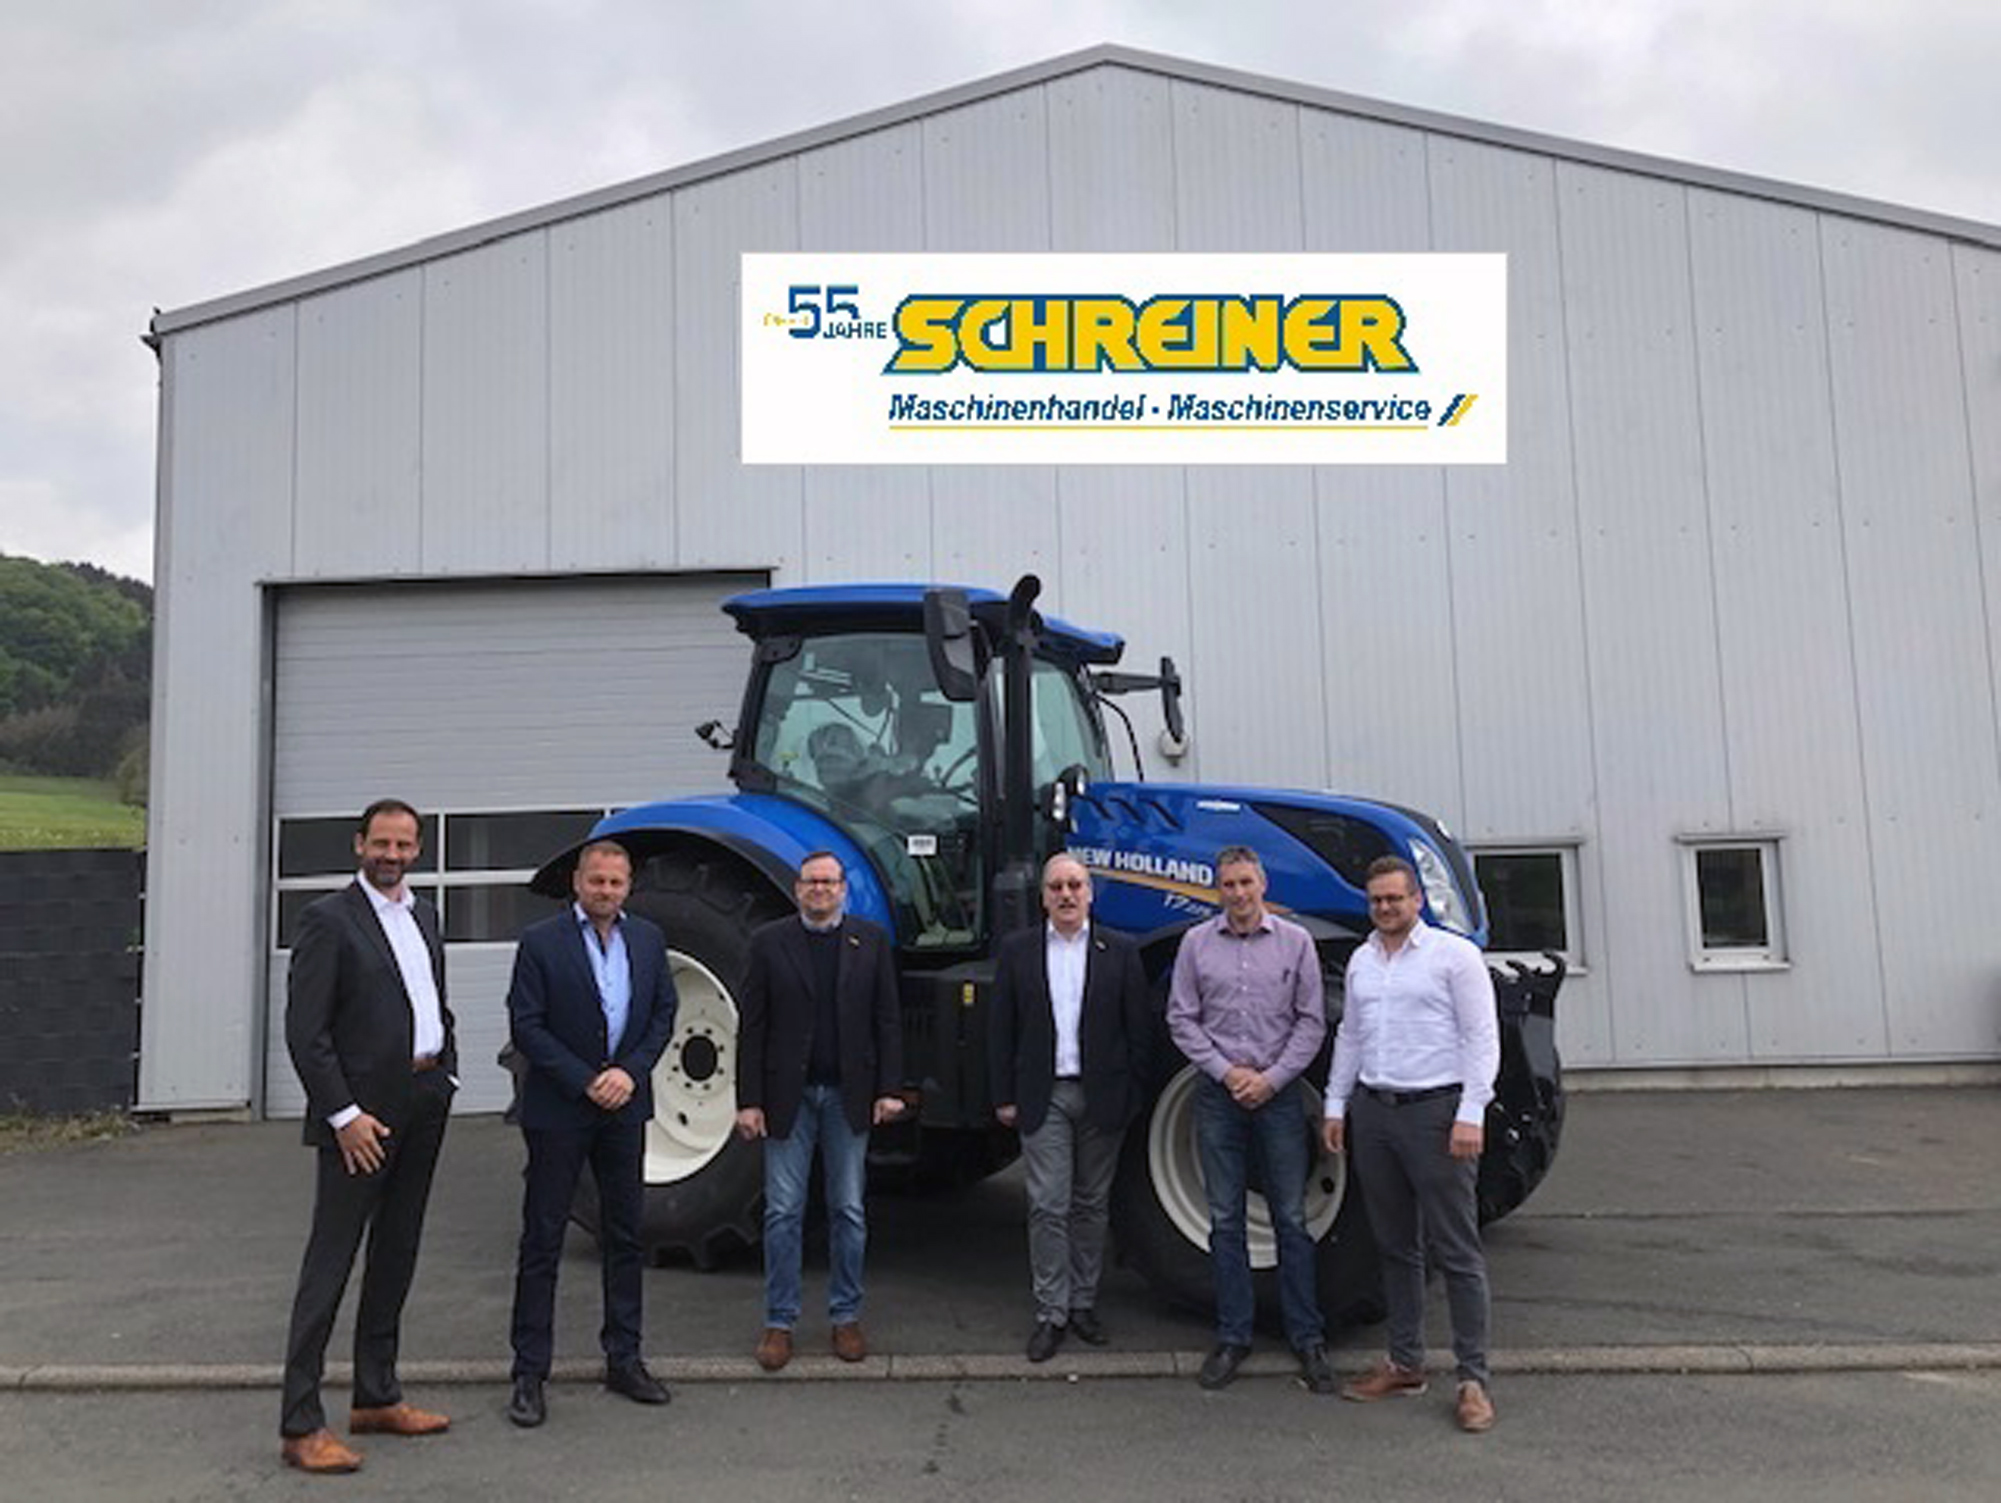 Neuer New Holland-Vertriebspartner: Helmut Schreiner KG|copyright: New Holland